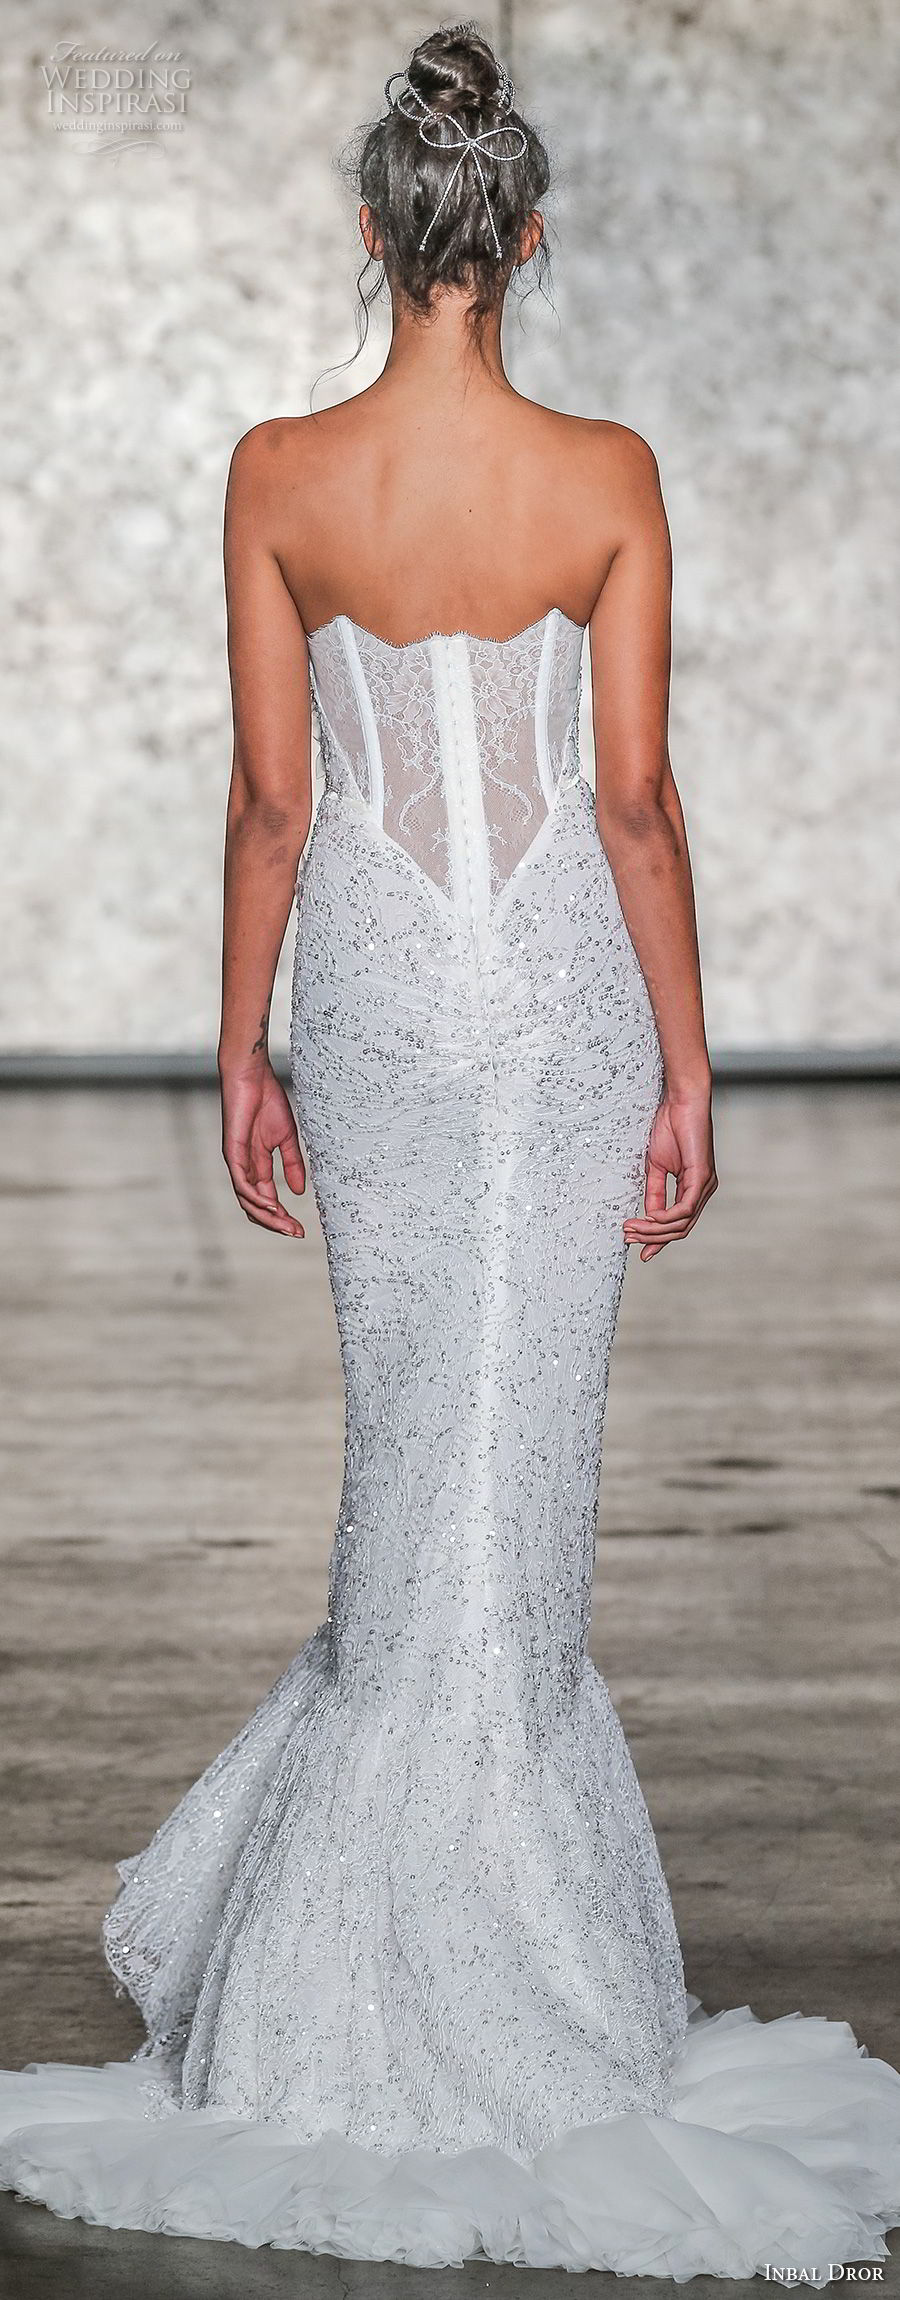 inbal dror fall 2018 bridal strapless sweetheart neckline full embellishment elegant mermaid wedding dress sweep train (23) bv